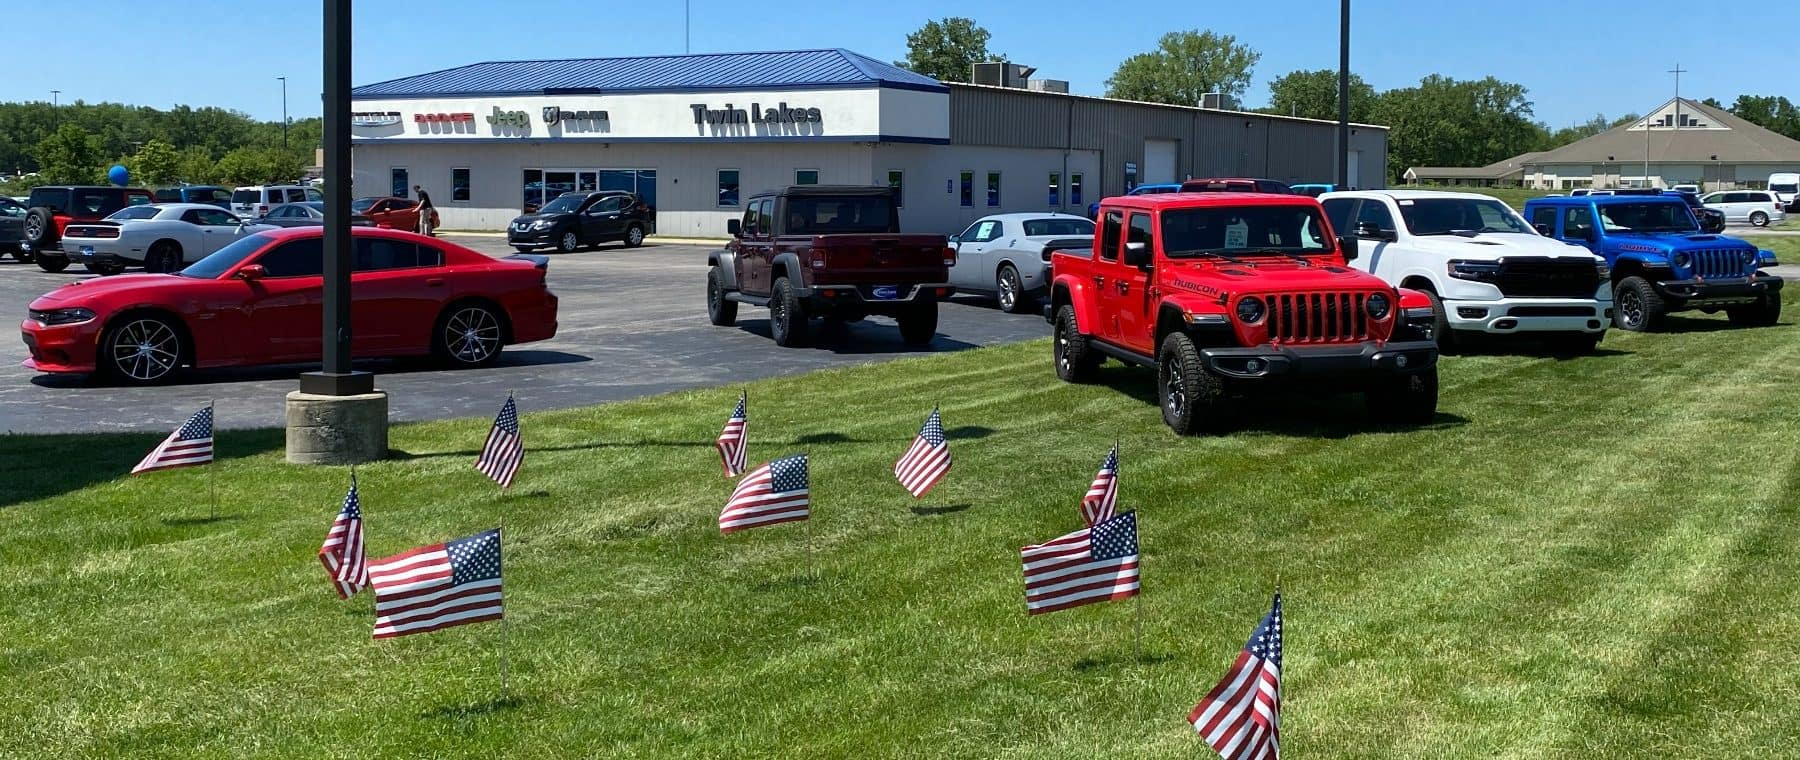 Twin Lakes Chrysler Dodge Jeep Ram in Monticello, IN